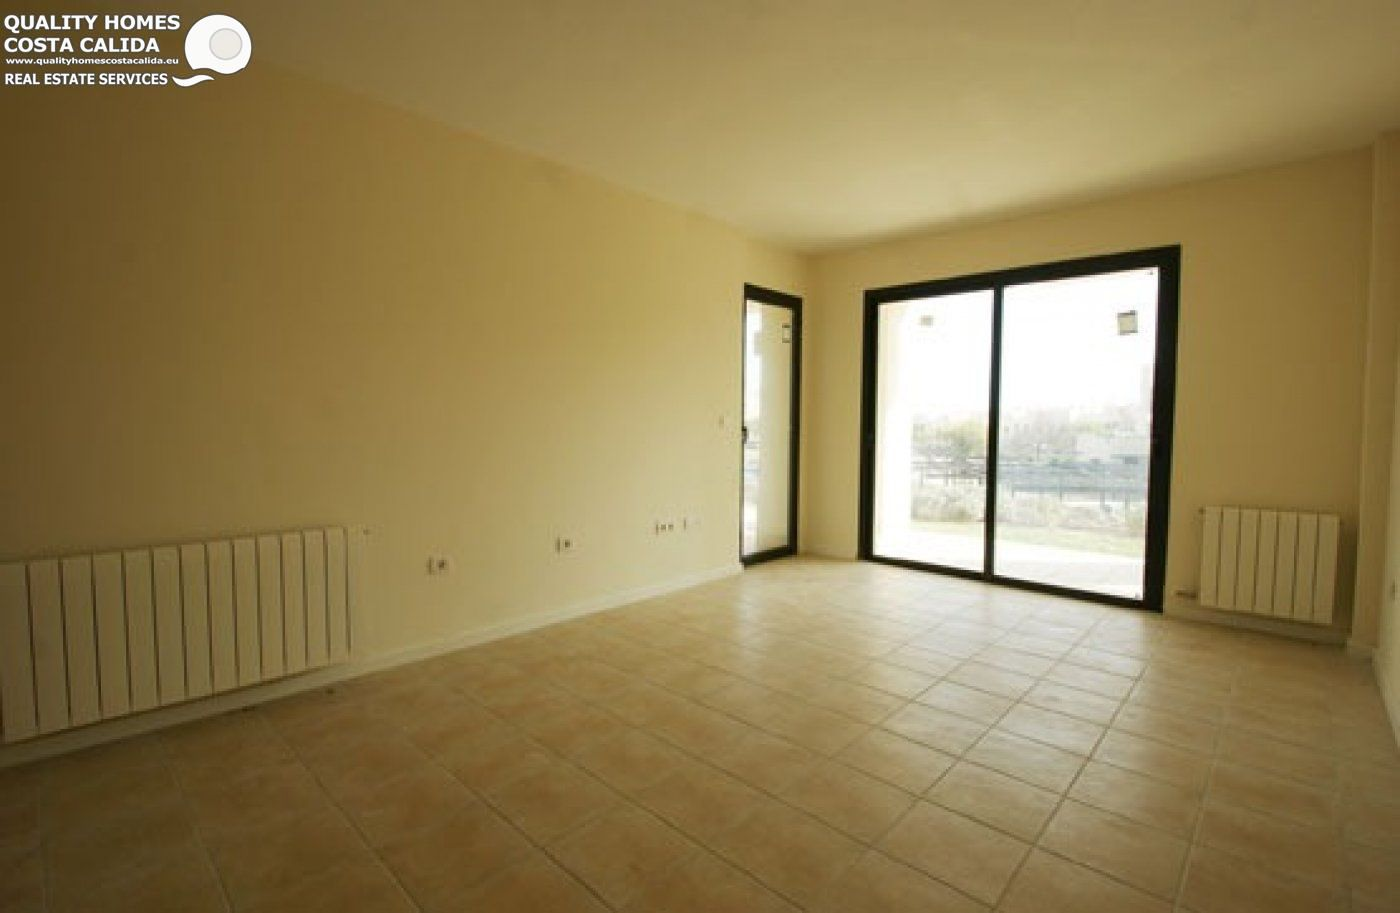 Gallery Image 4 of Maybe the best investment in the Murcia Region